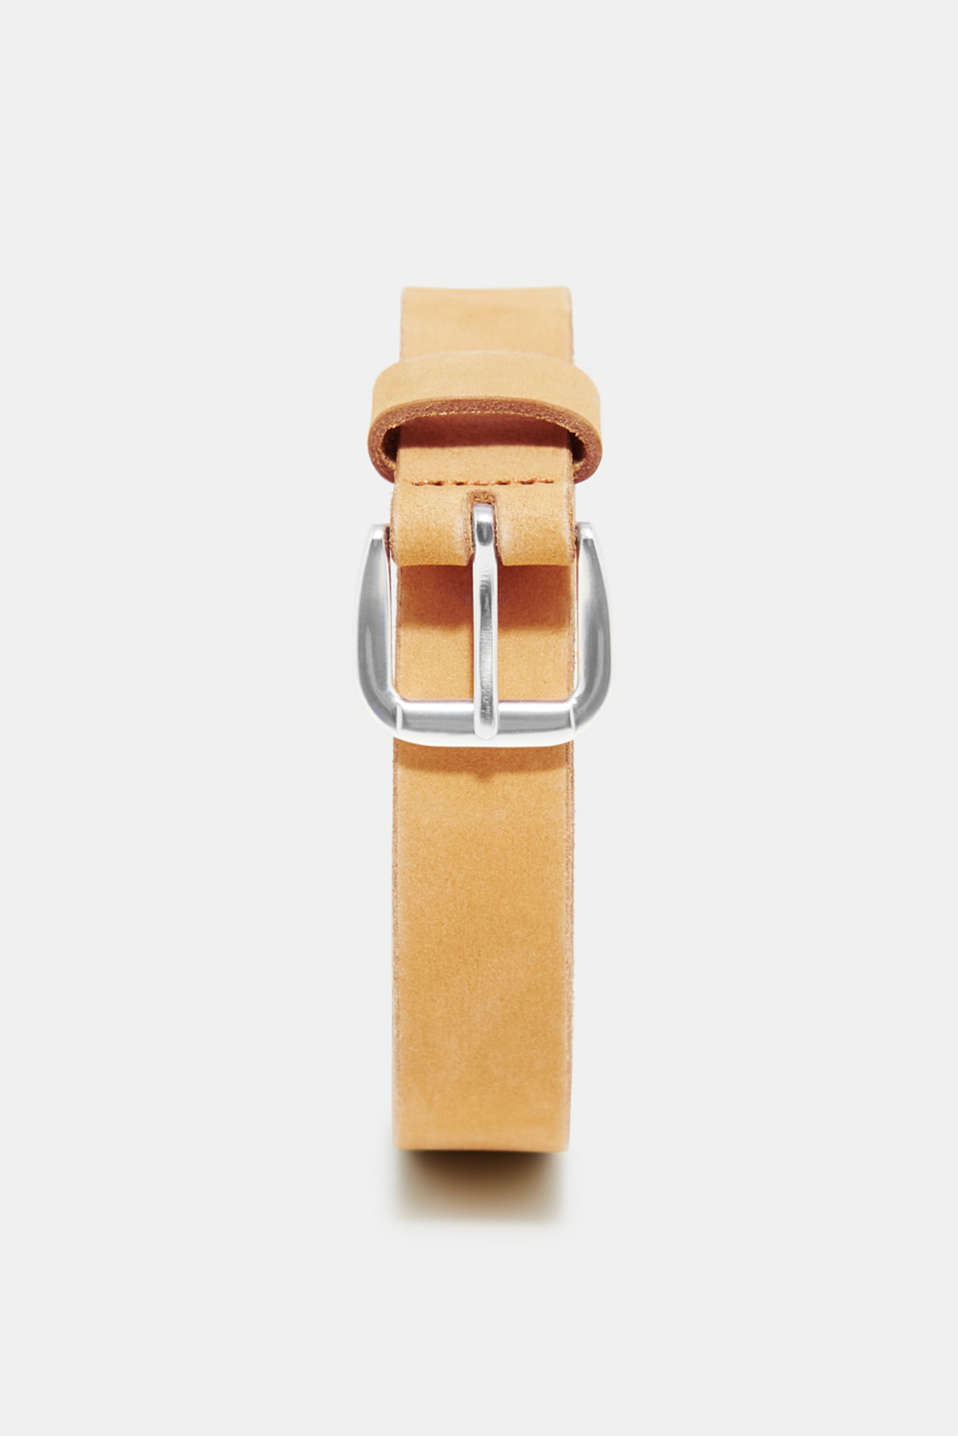 We love ESPRIT! The logo embossing makes this suede belt a statement piece.